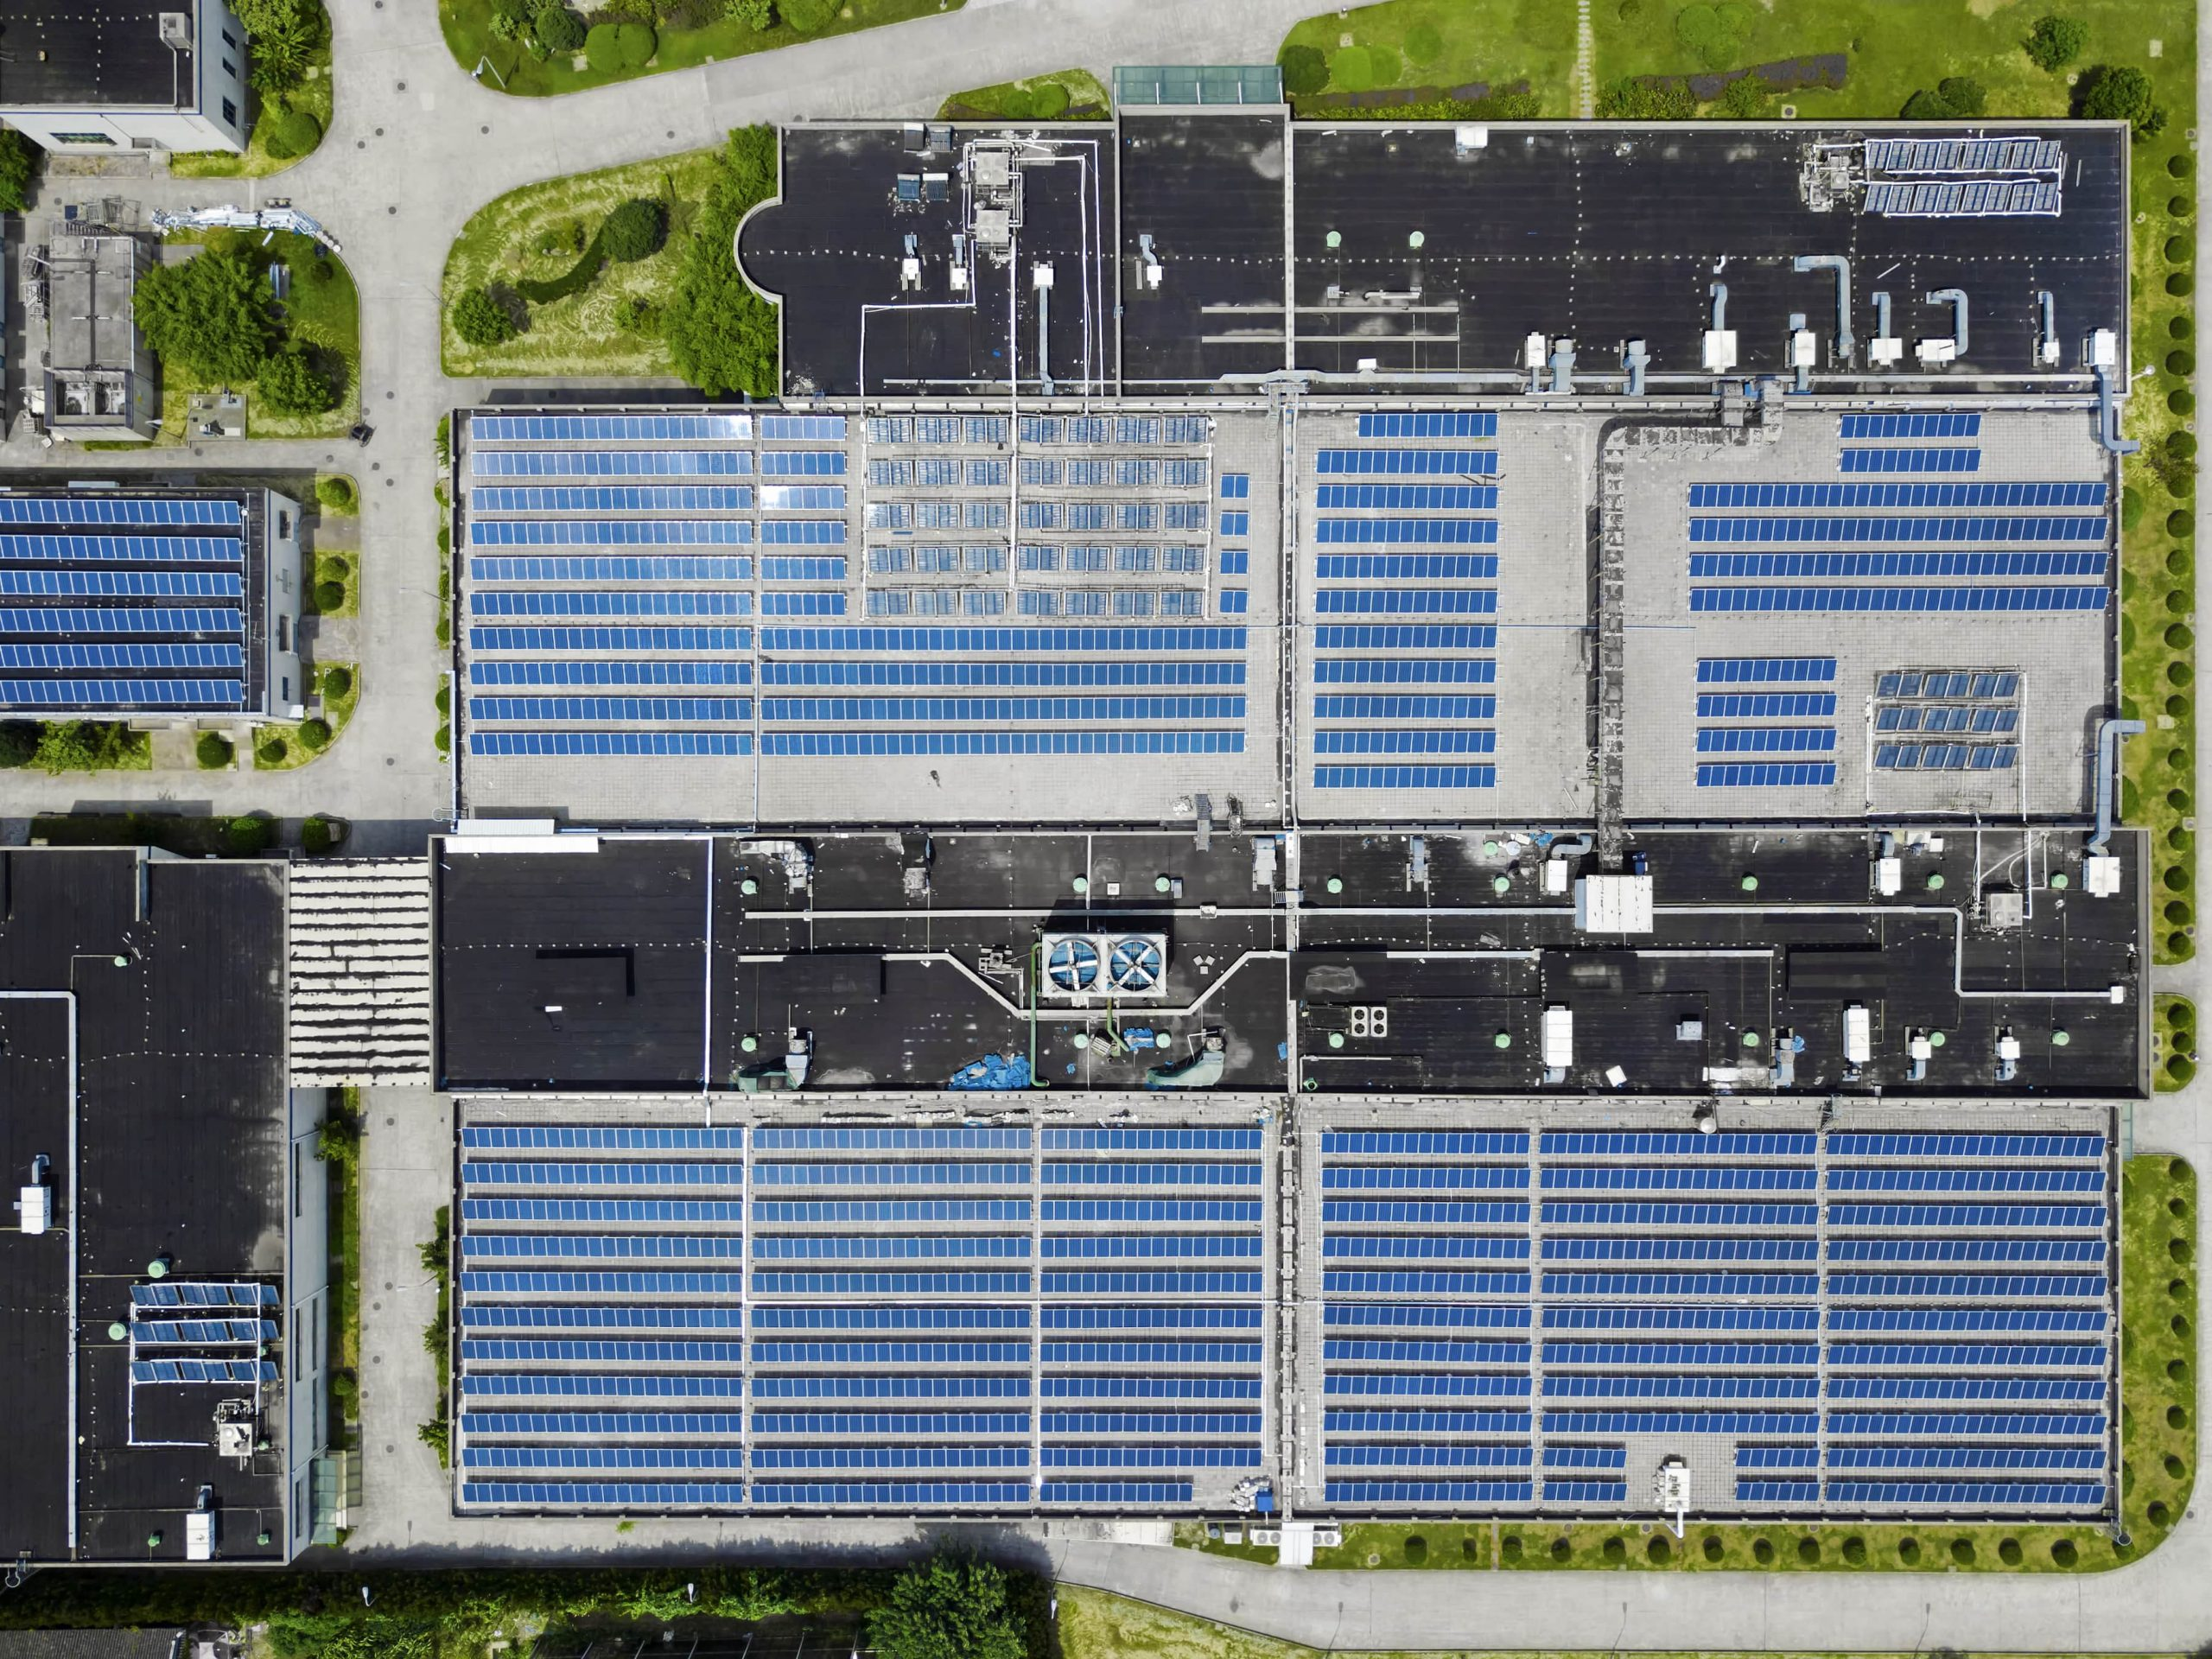 solar panels on the roof of a large building